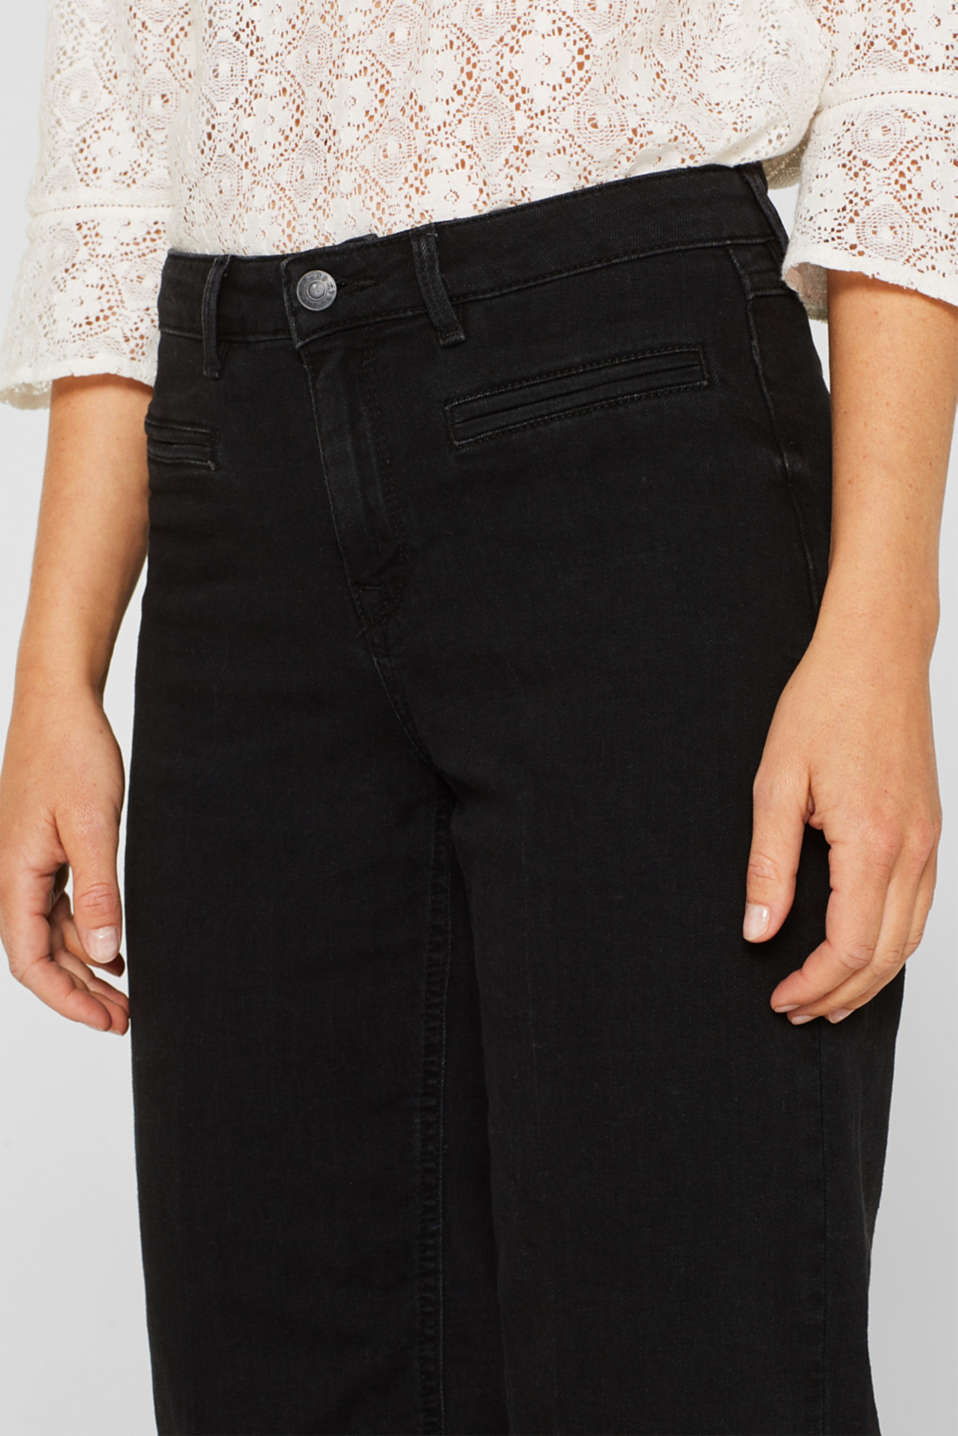 Jean culottes with an open hem, BLACK DARK WASH, detail image number 2